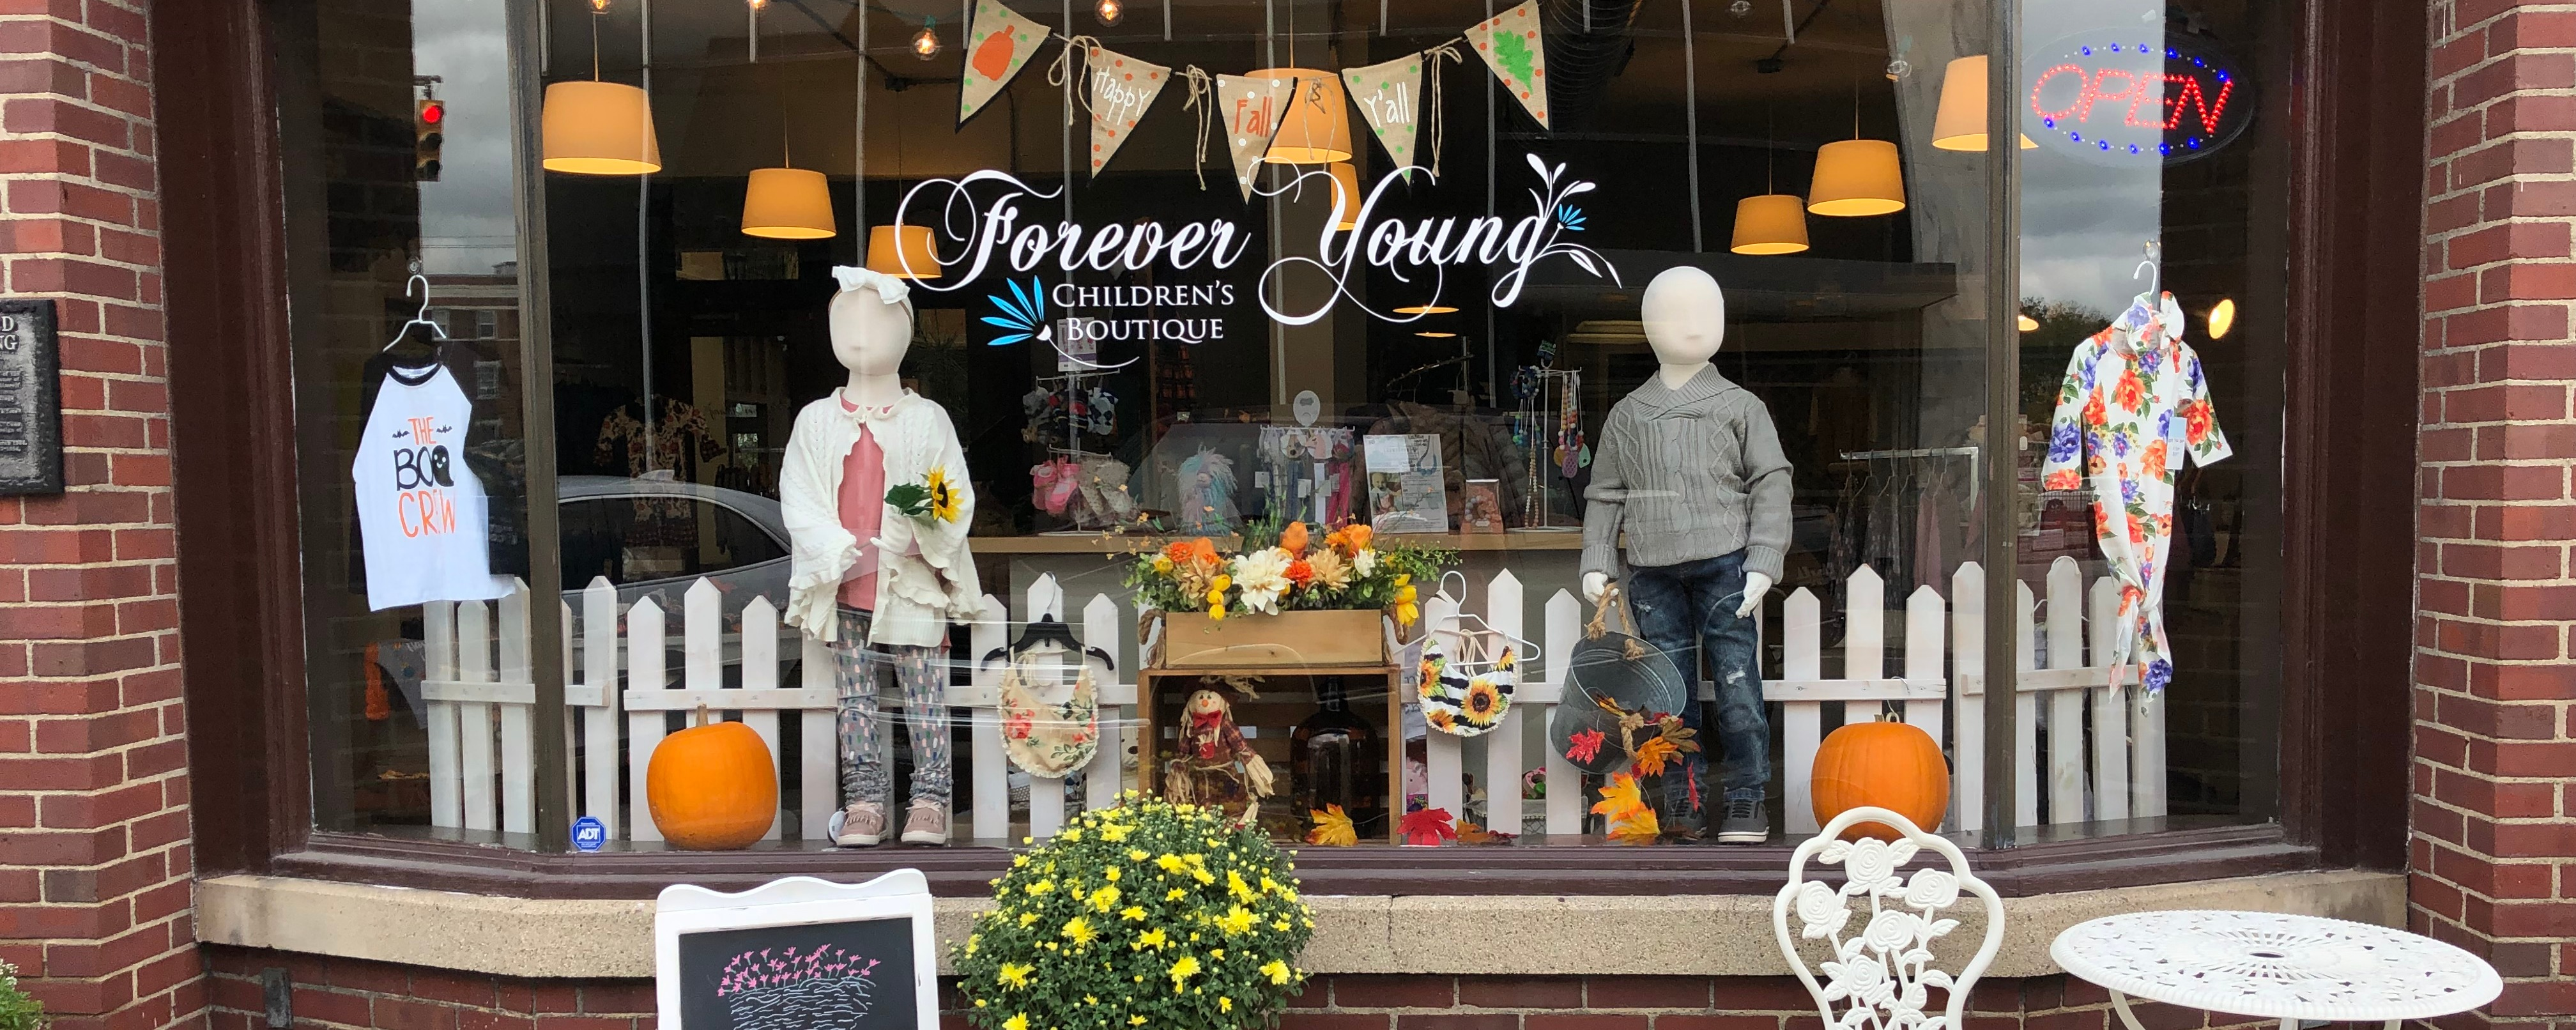 Shoptiques Boutique: Forever YOUNG Children's Boutique